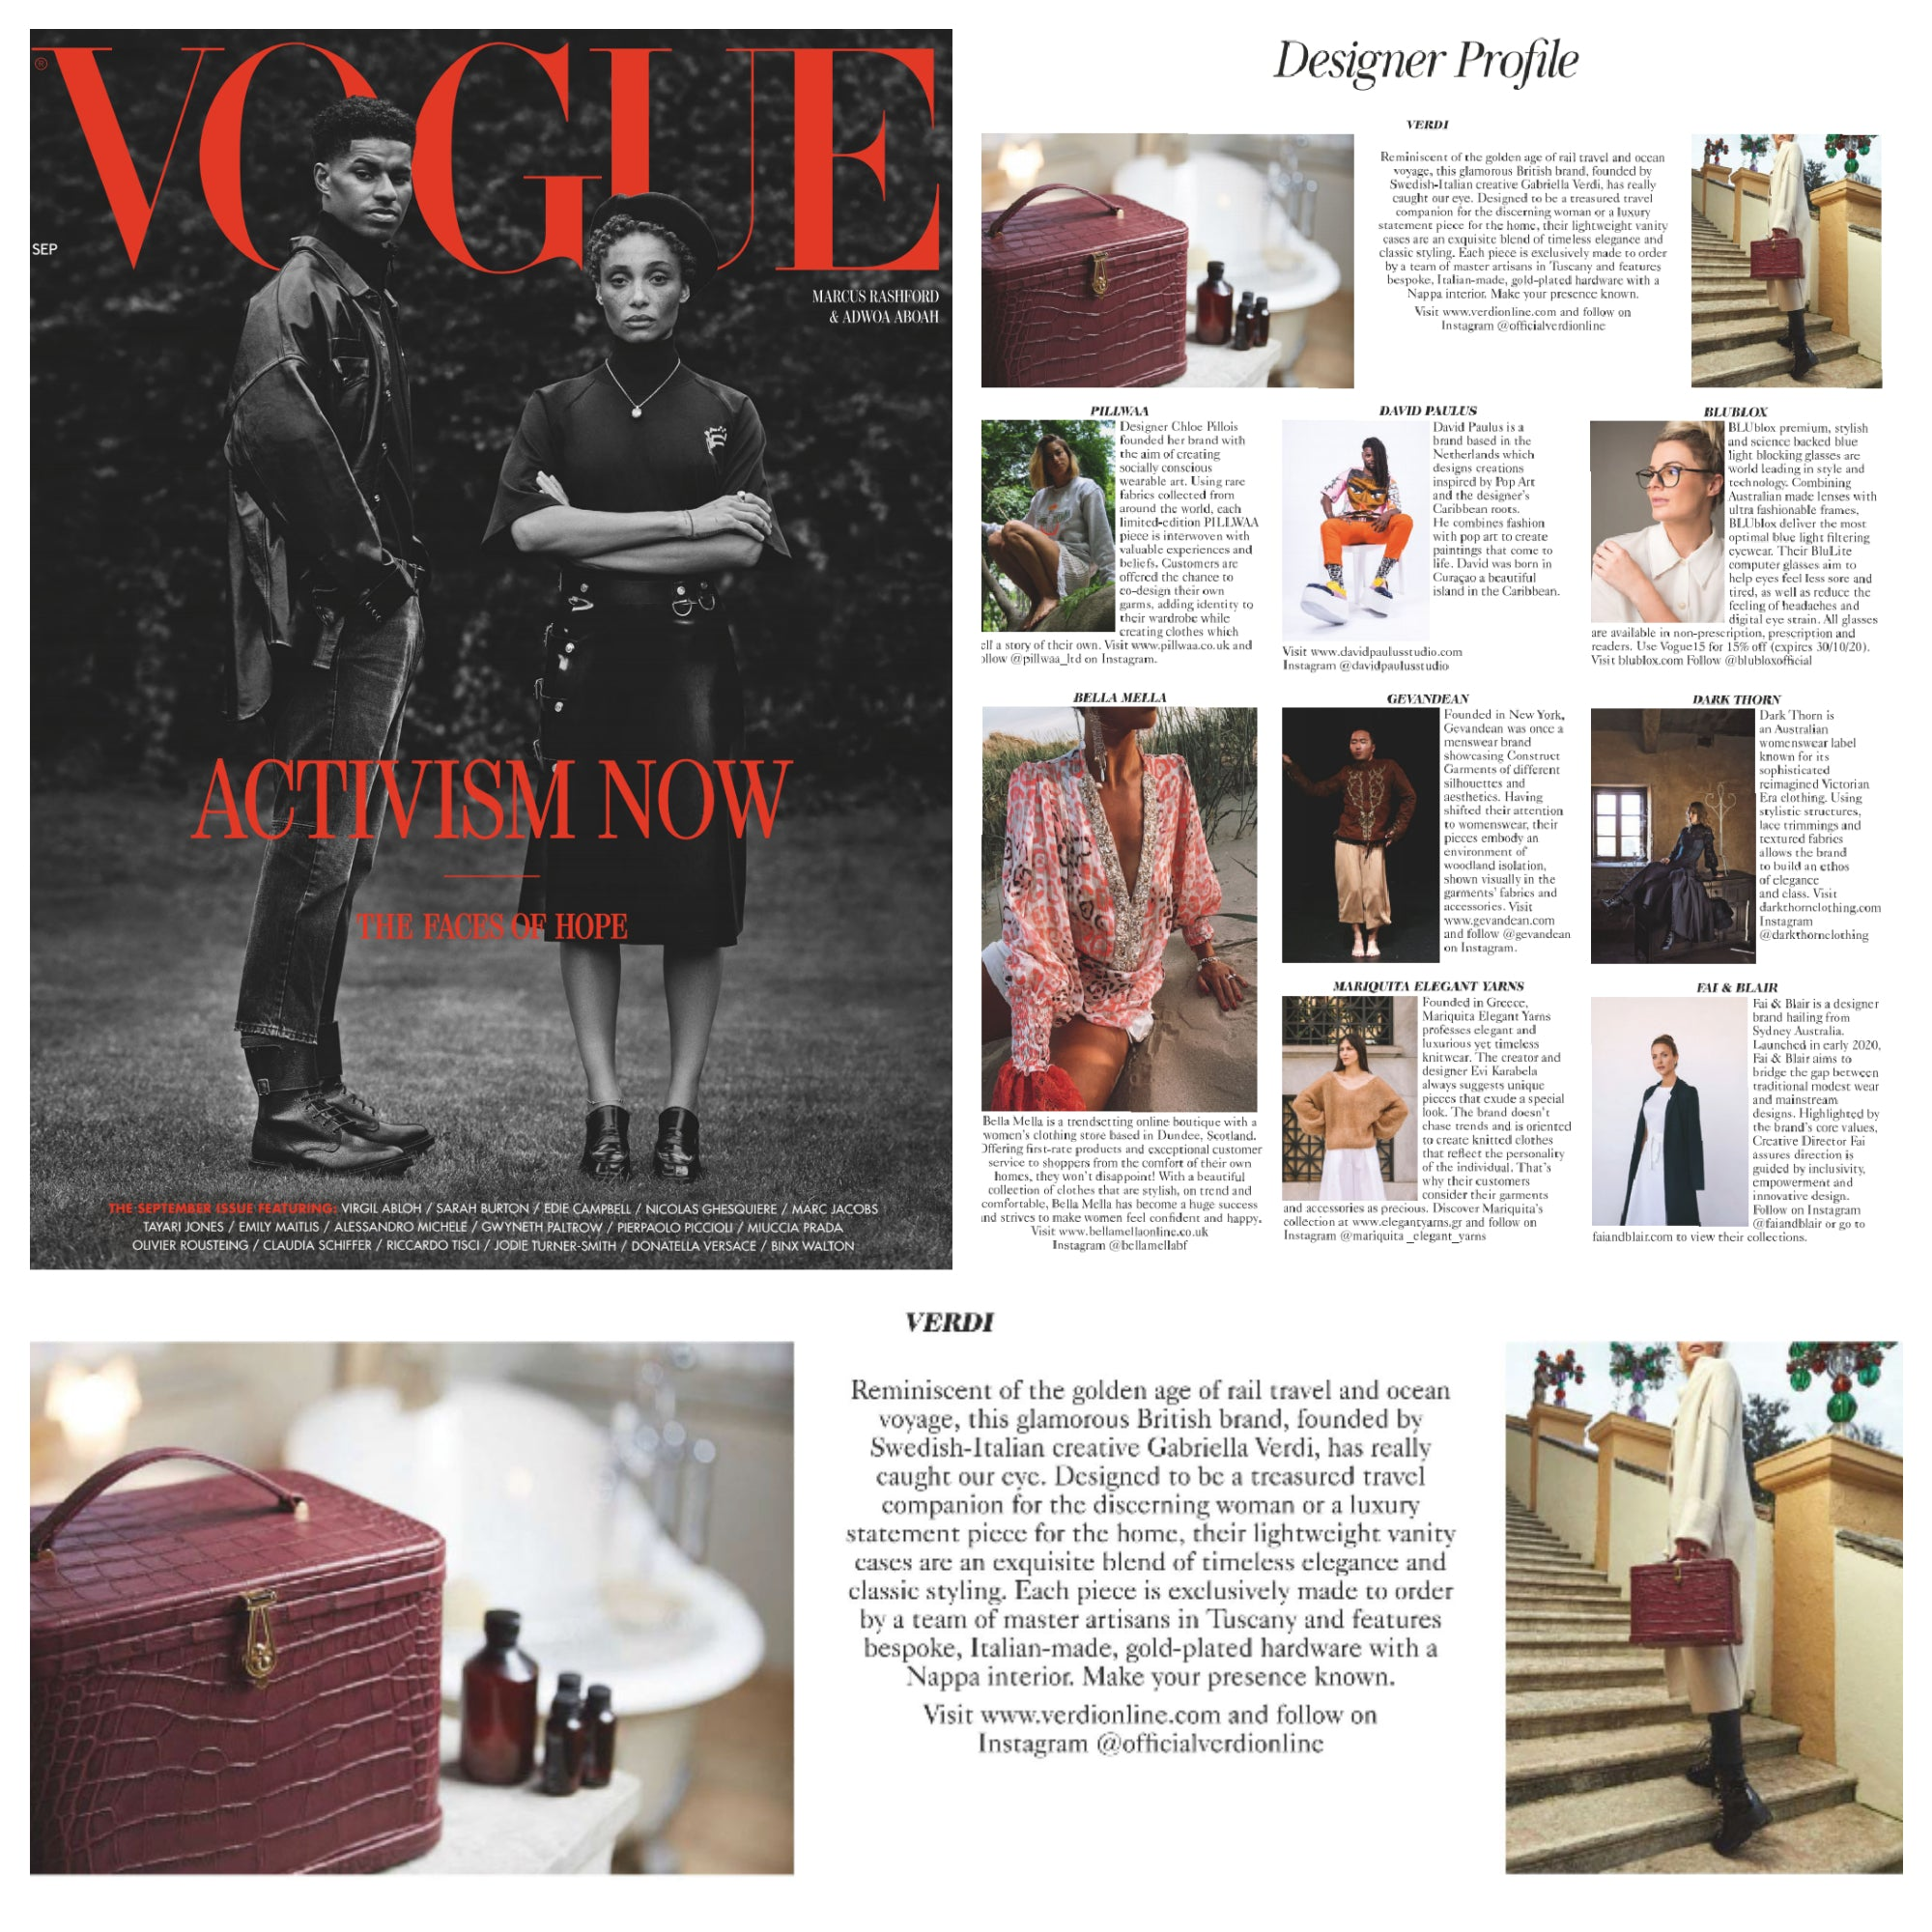 Atelier Verdi in British Vogue September 2020 Designer Profile